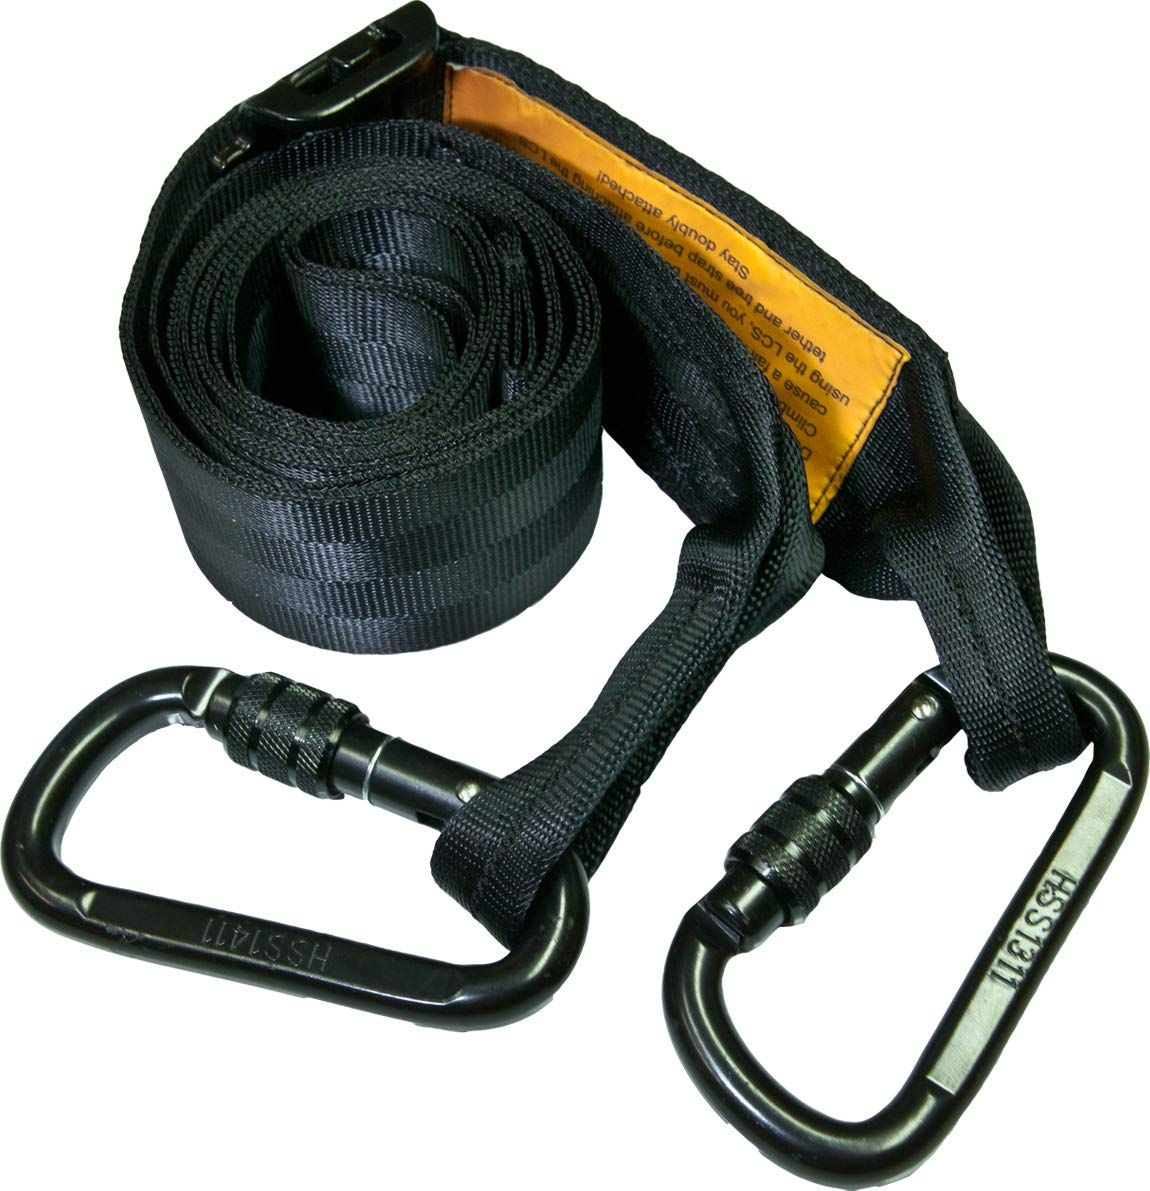 LCS Hunter Safety Linemans' Climbing Strap https